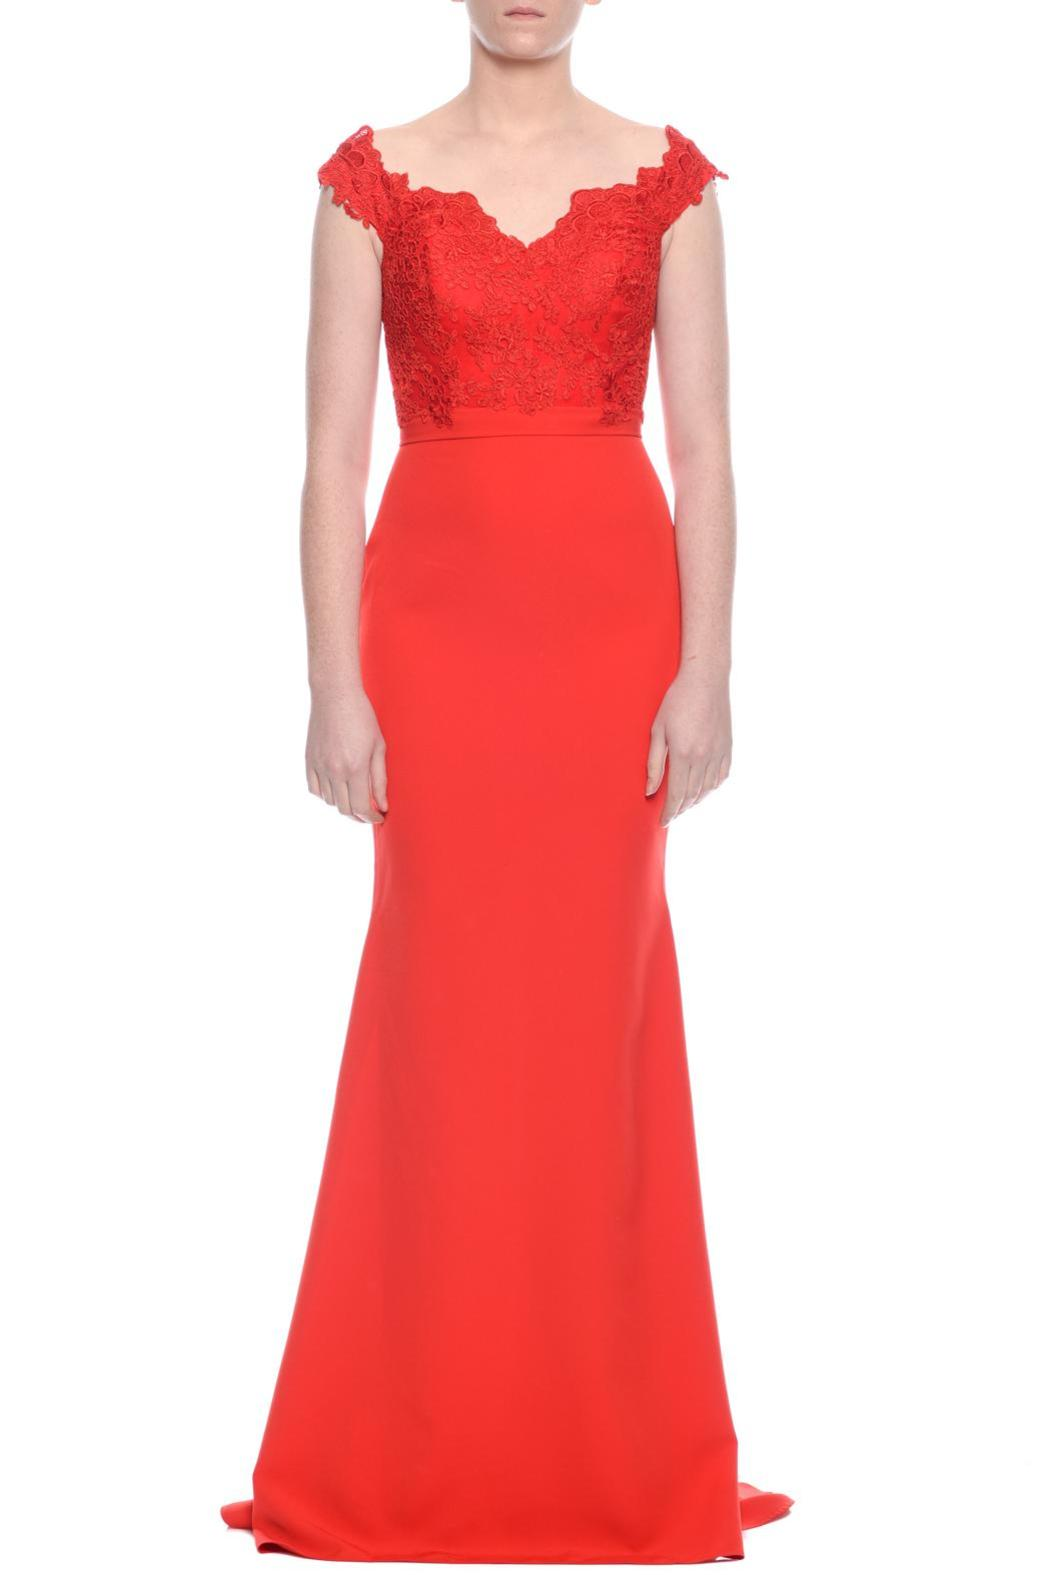 e8fb2aeec2 Jadore Vogue Gown from Sydney by Windsor and Lux — Shoptiques